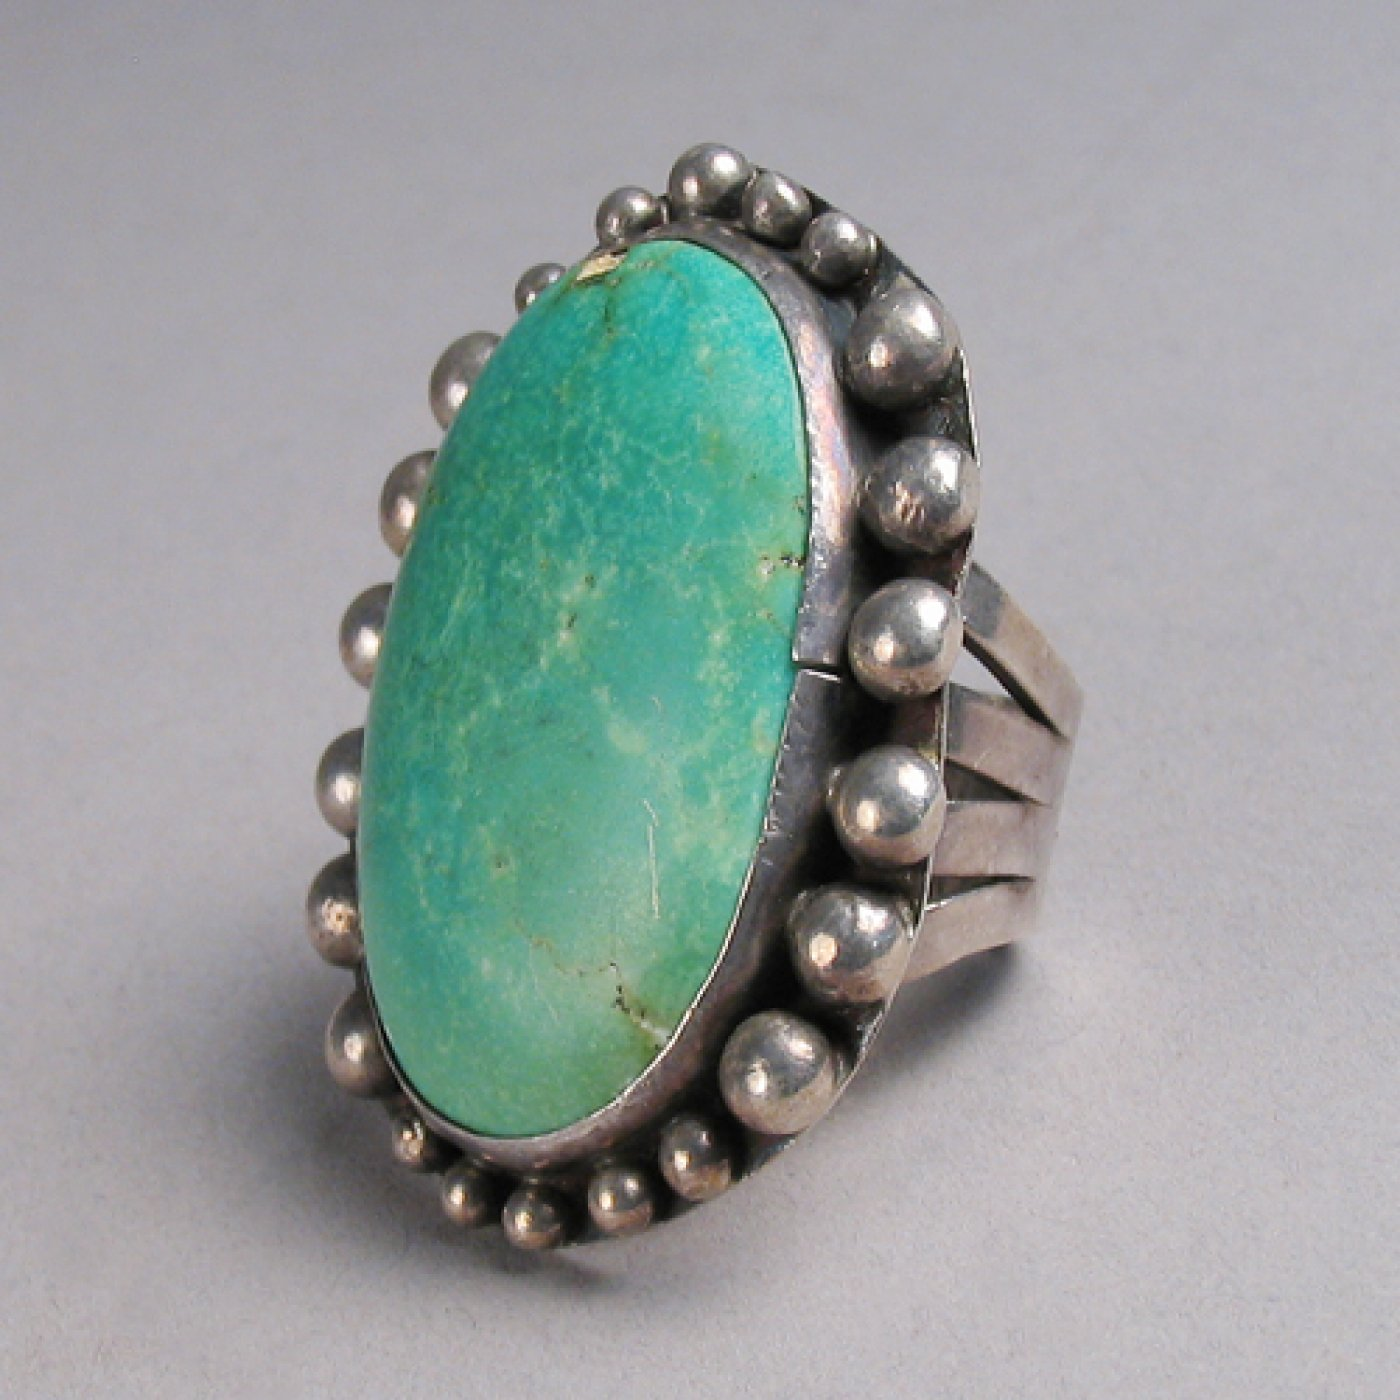 Vintage Ring With Large Oval Turquoise Stone Shiprock